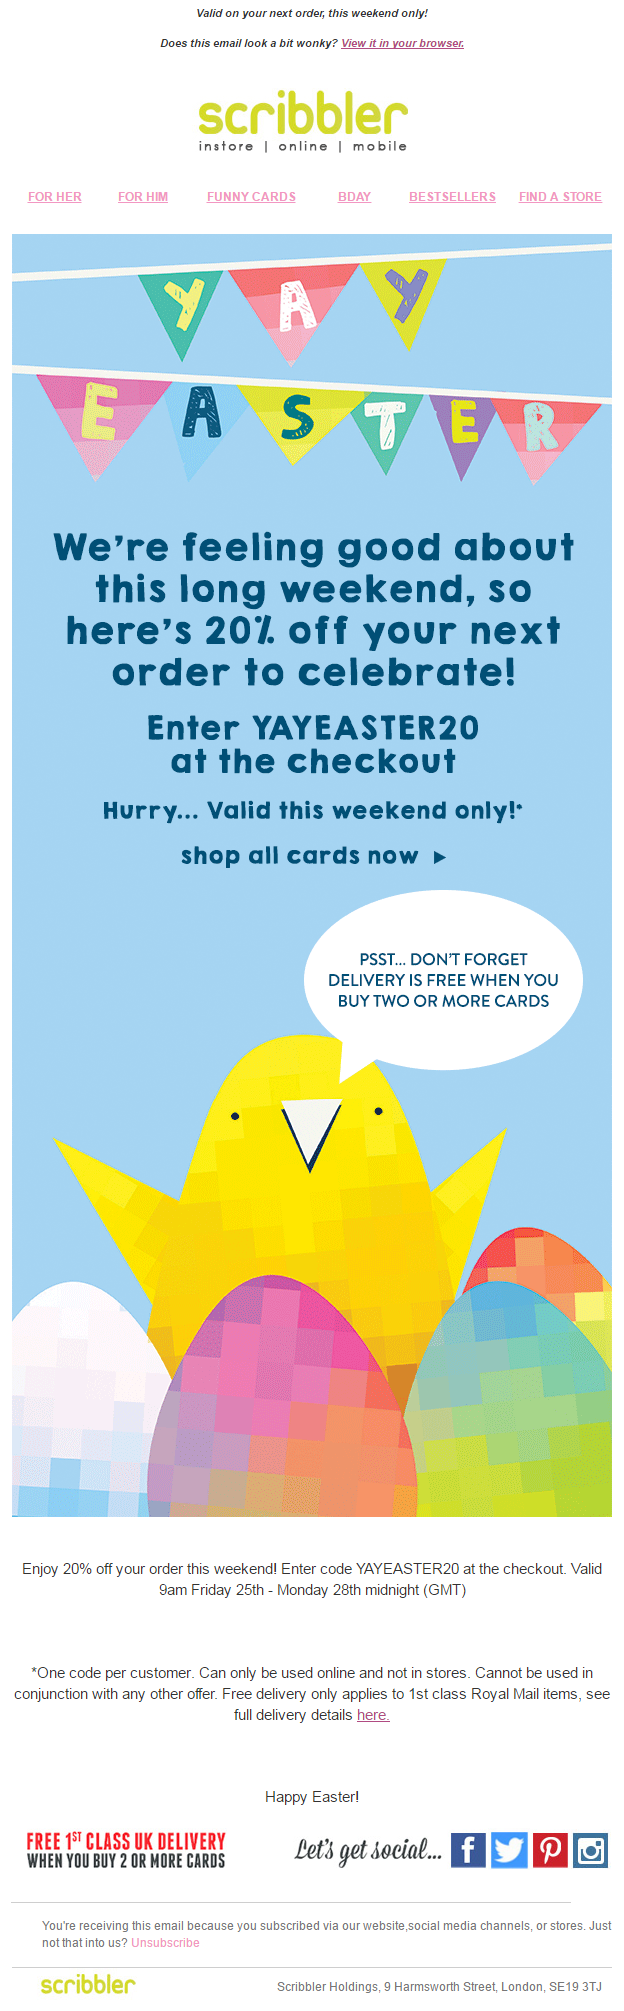 Easter offer email from scribbler with coupon code email marketing personalised cards birthday cards funny cards rude cards christmas cards free delivery on 2 or more cards negle Choice Image